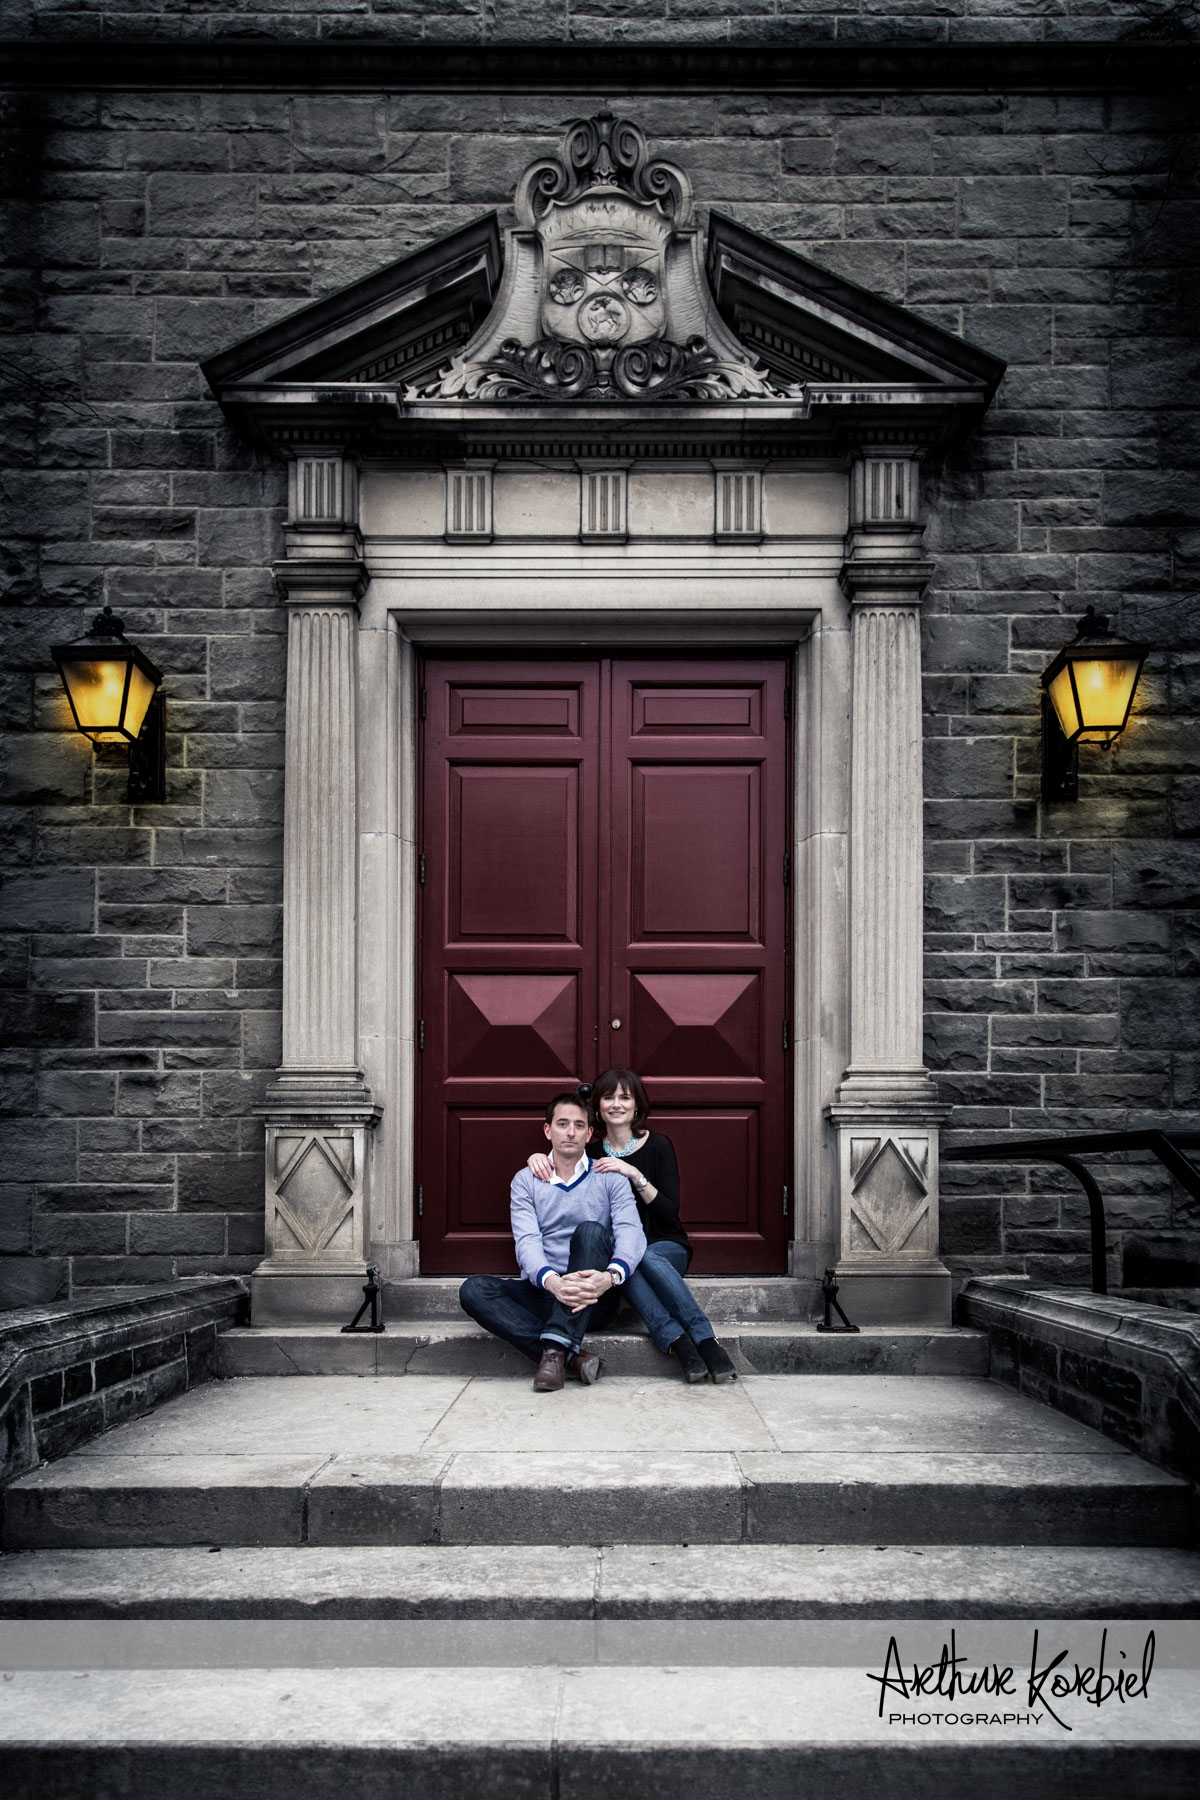 Arthur Korbiel Photography - London Wedding Photographer - UWO Gothic Red Door Engagement.jpg